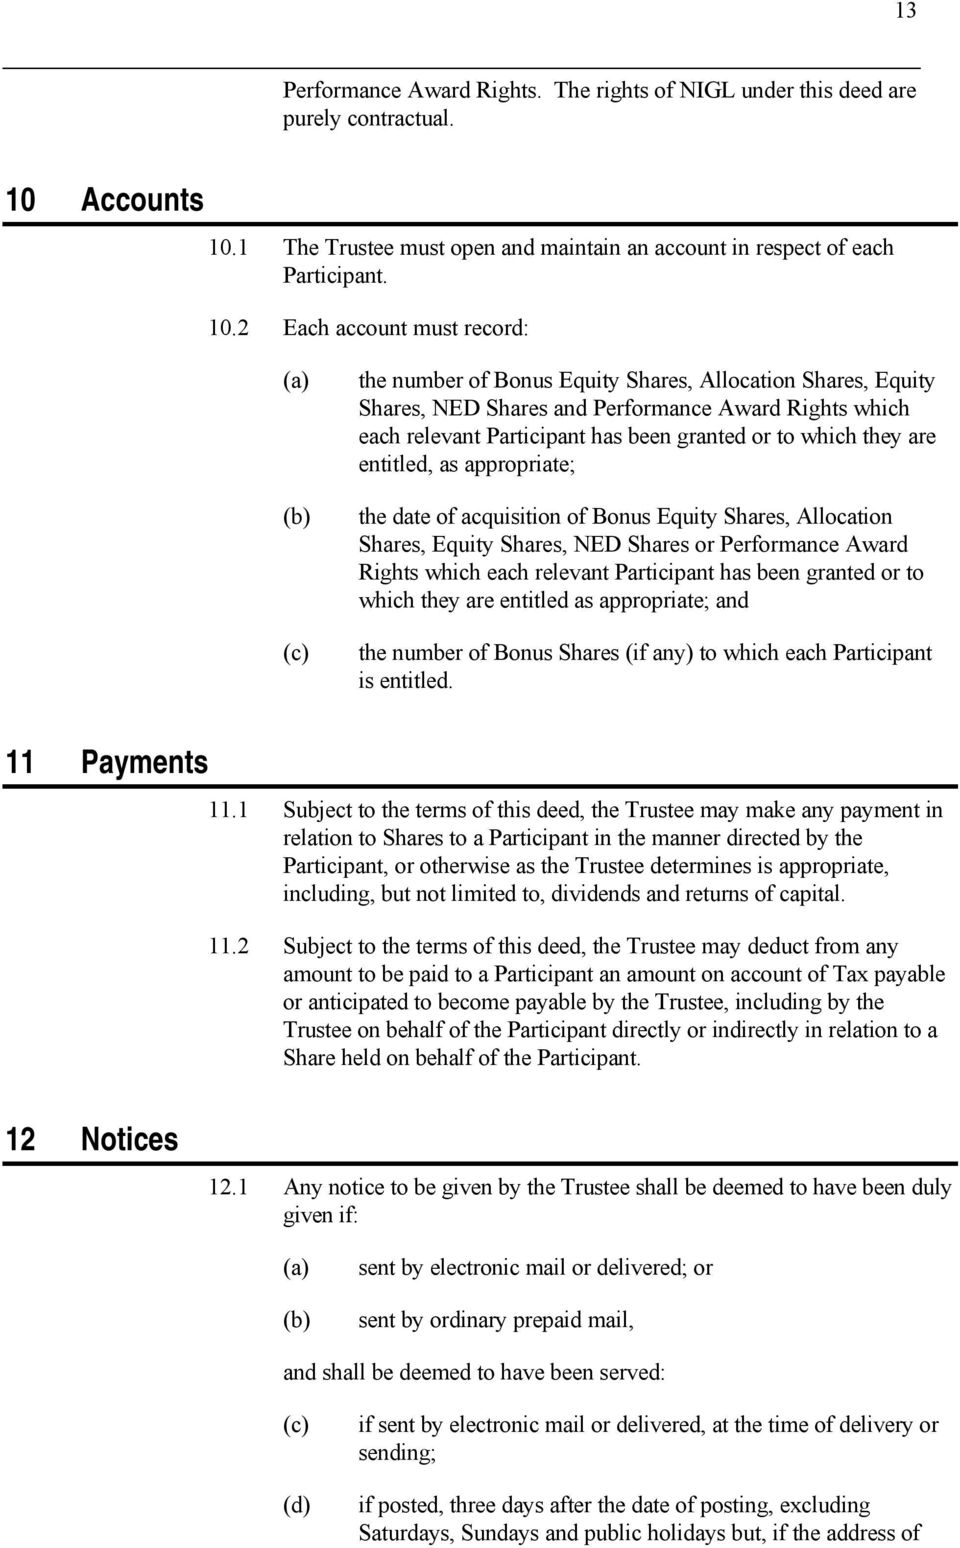 1 The Trustee must open and maintain an account in respect of each Participant. 10.